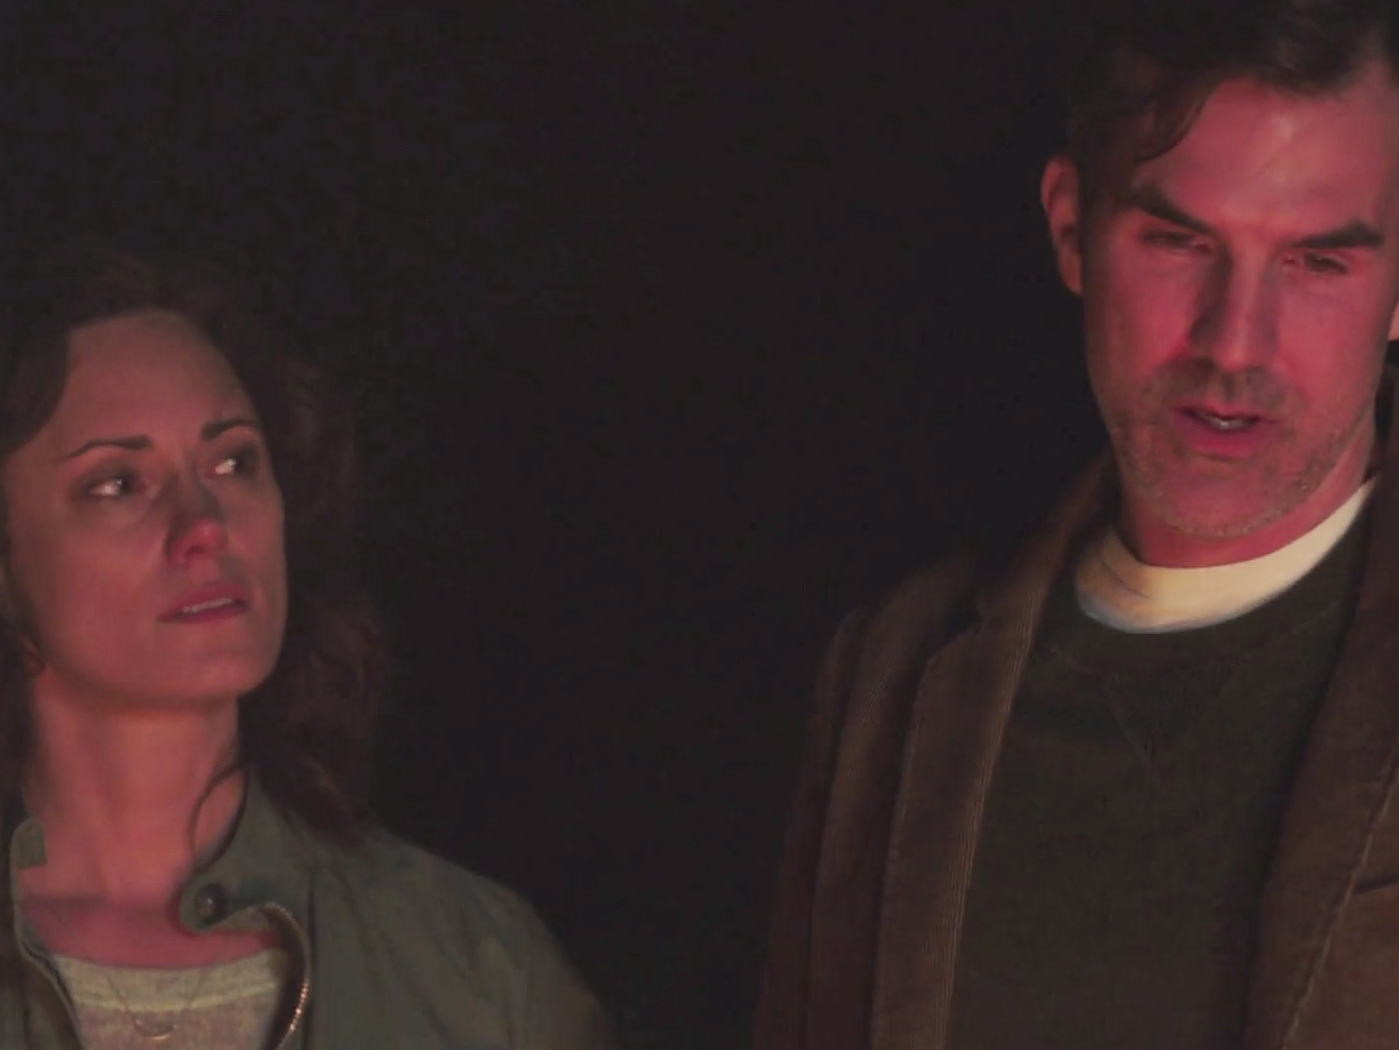 Jessica and Mike in the warm glow of a burning child's corpse.